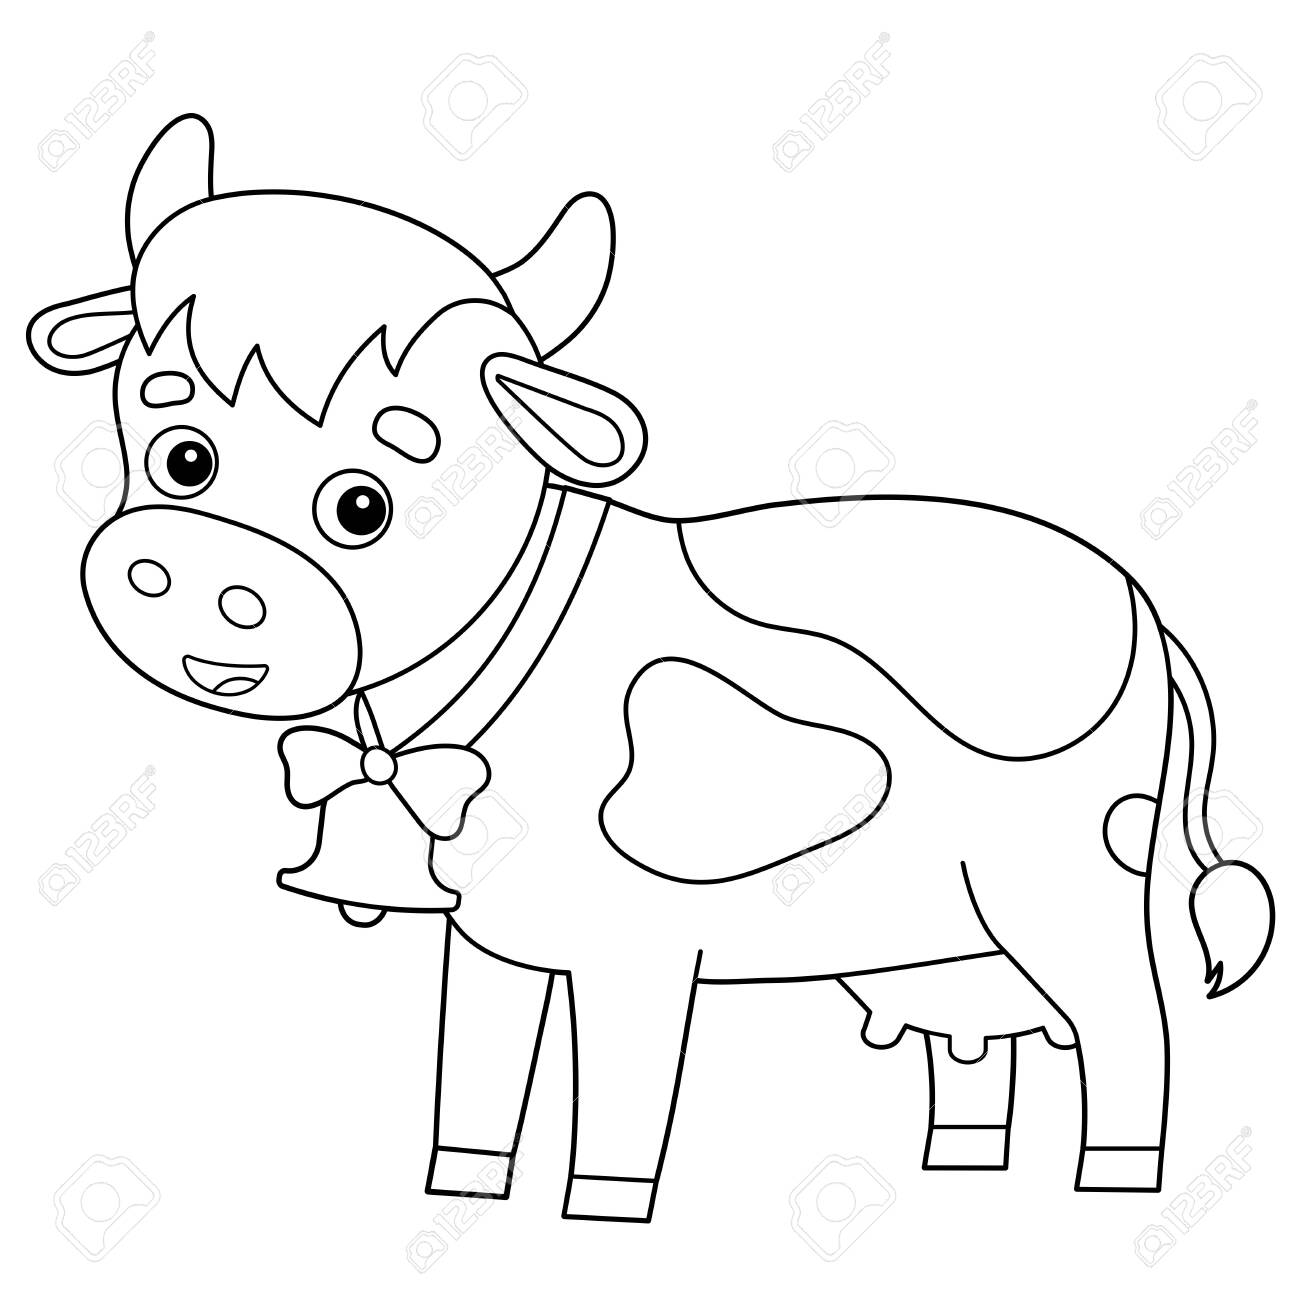 Coloring Page Outline Of Cartoon Cow With Bell Farm Animals Royalty Free Cliparts Vectors And Stock Illustration Image 135270772